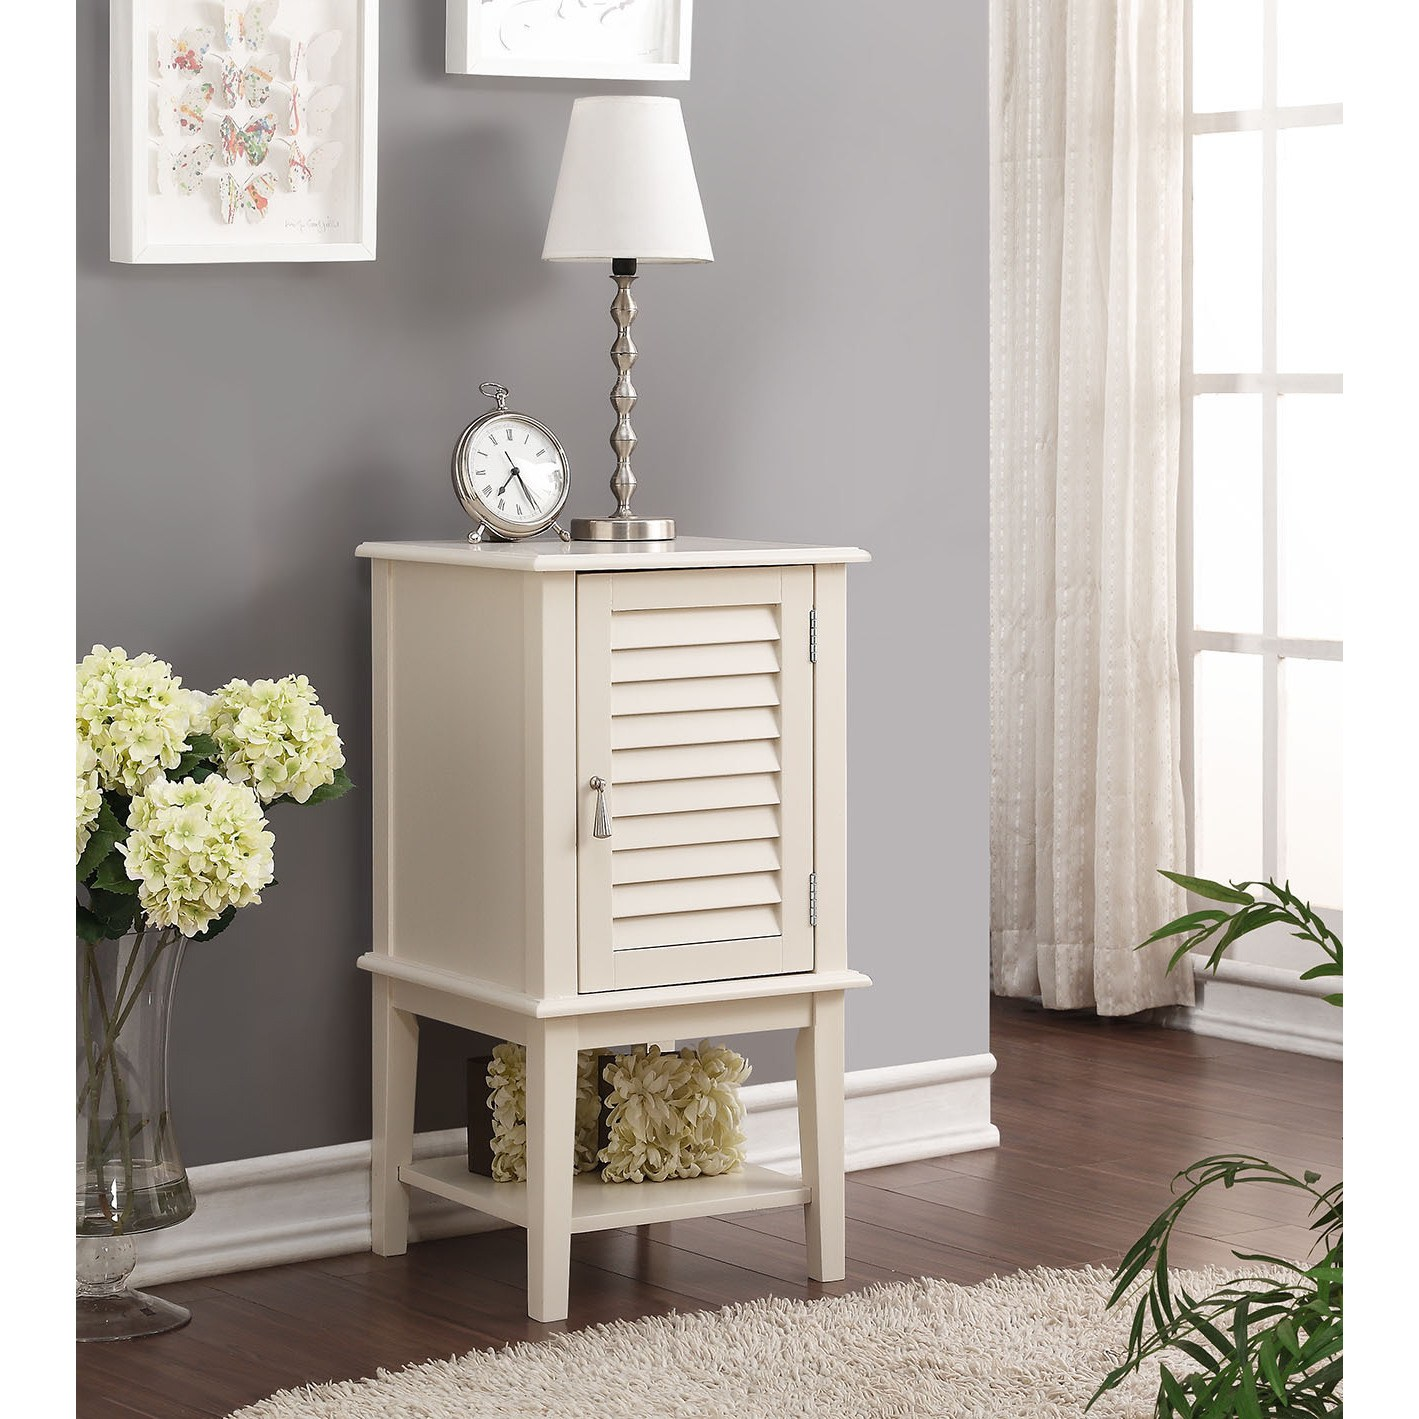 hilda white side table free shipping today linon galway accent metal threshold cover navy end cordless battery operated lamps carpet termination strip chinese ceramic nautical